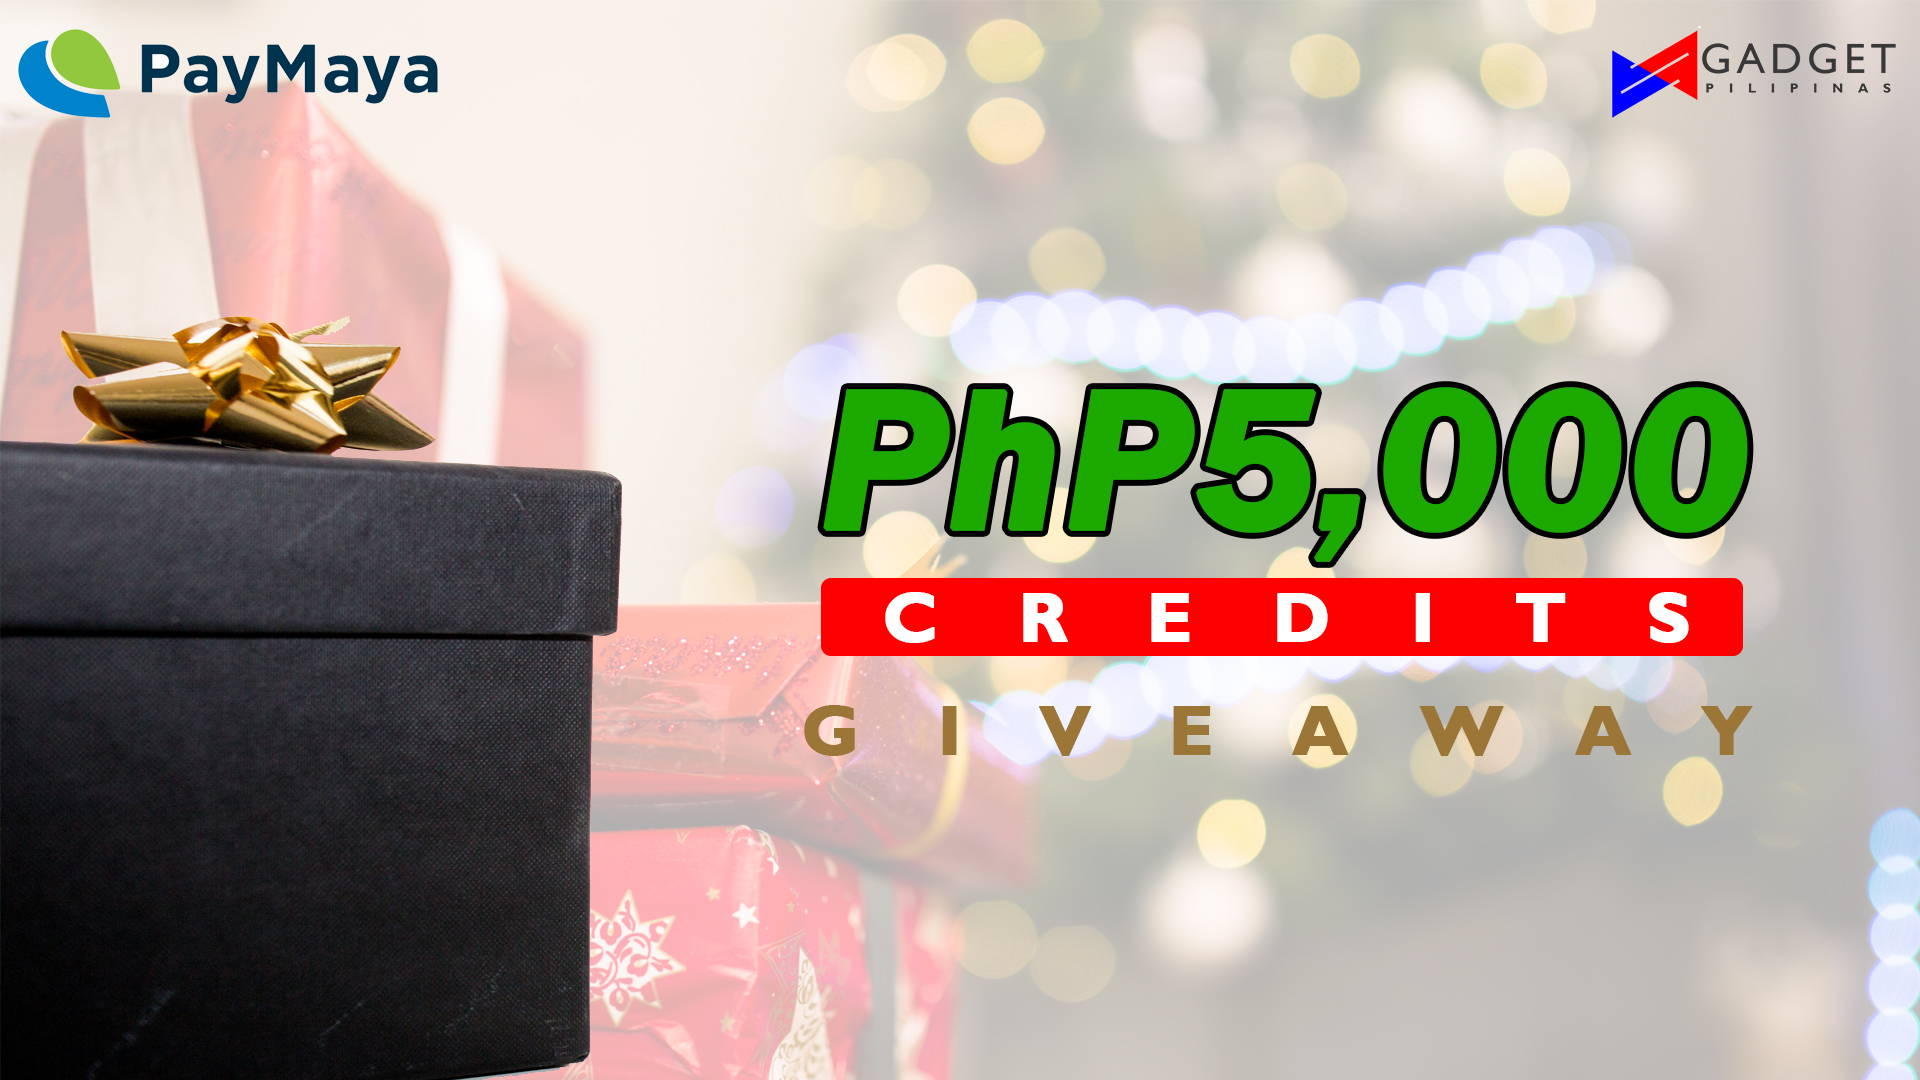 PayMaya - PayMaya gives you plenty of reasons to #ShareTheLove; plus we've got PhP5,000 PayMaya giveaway!